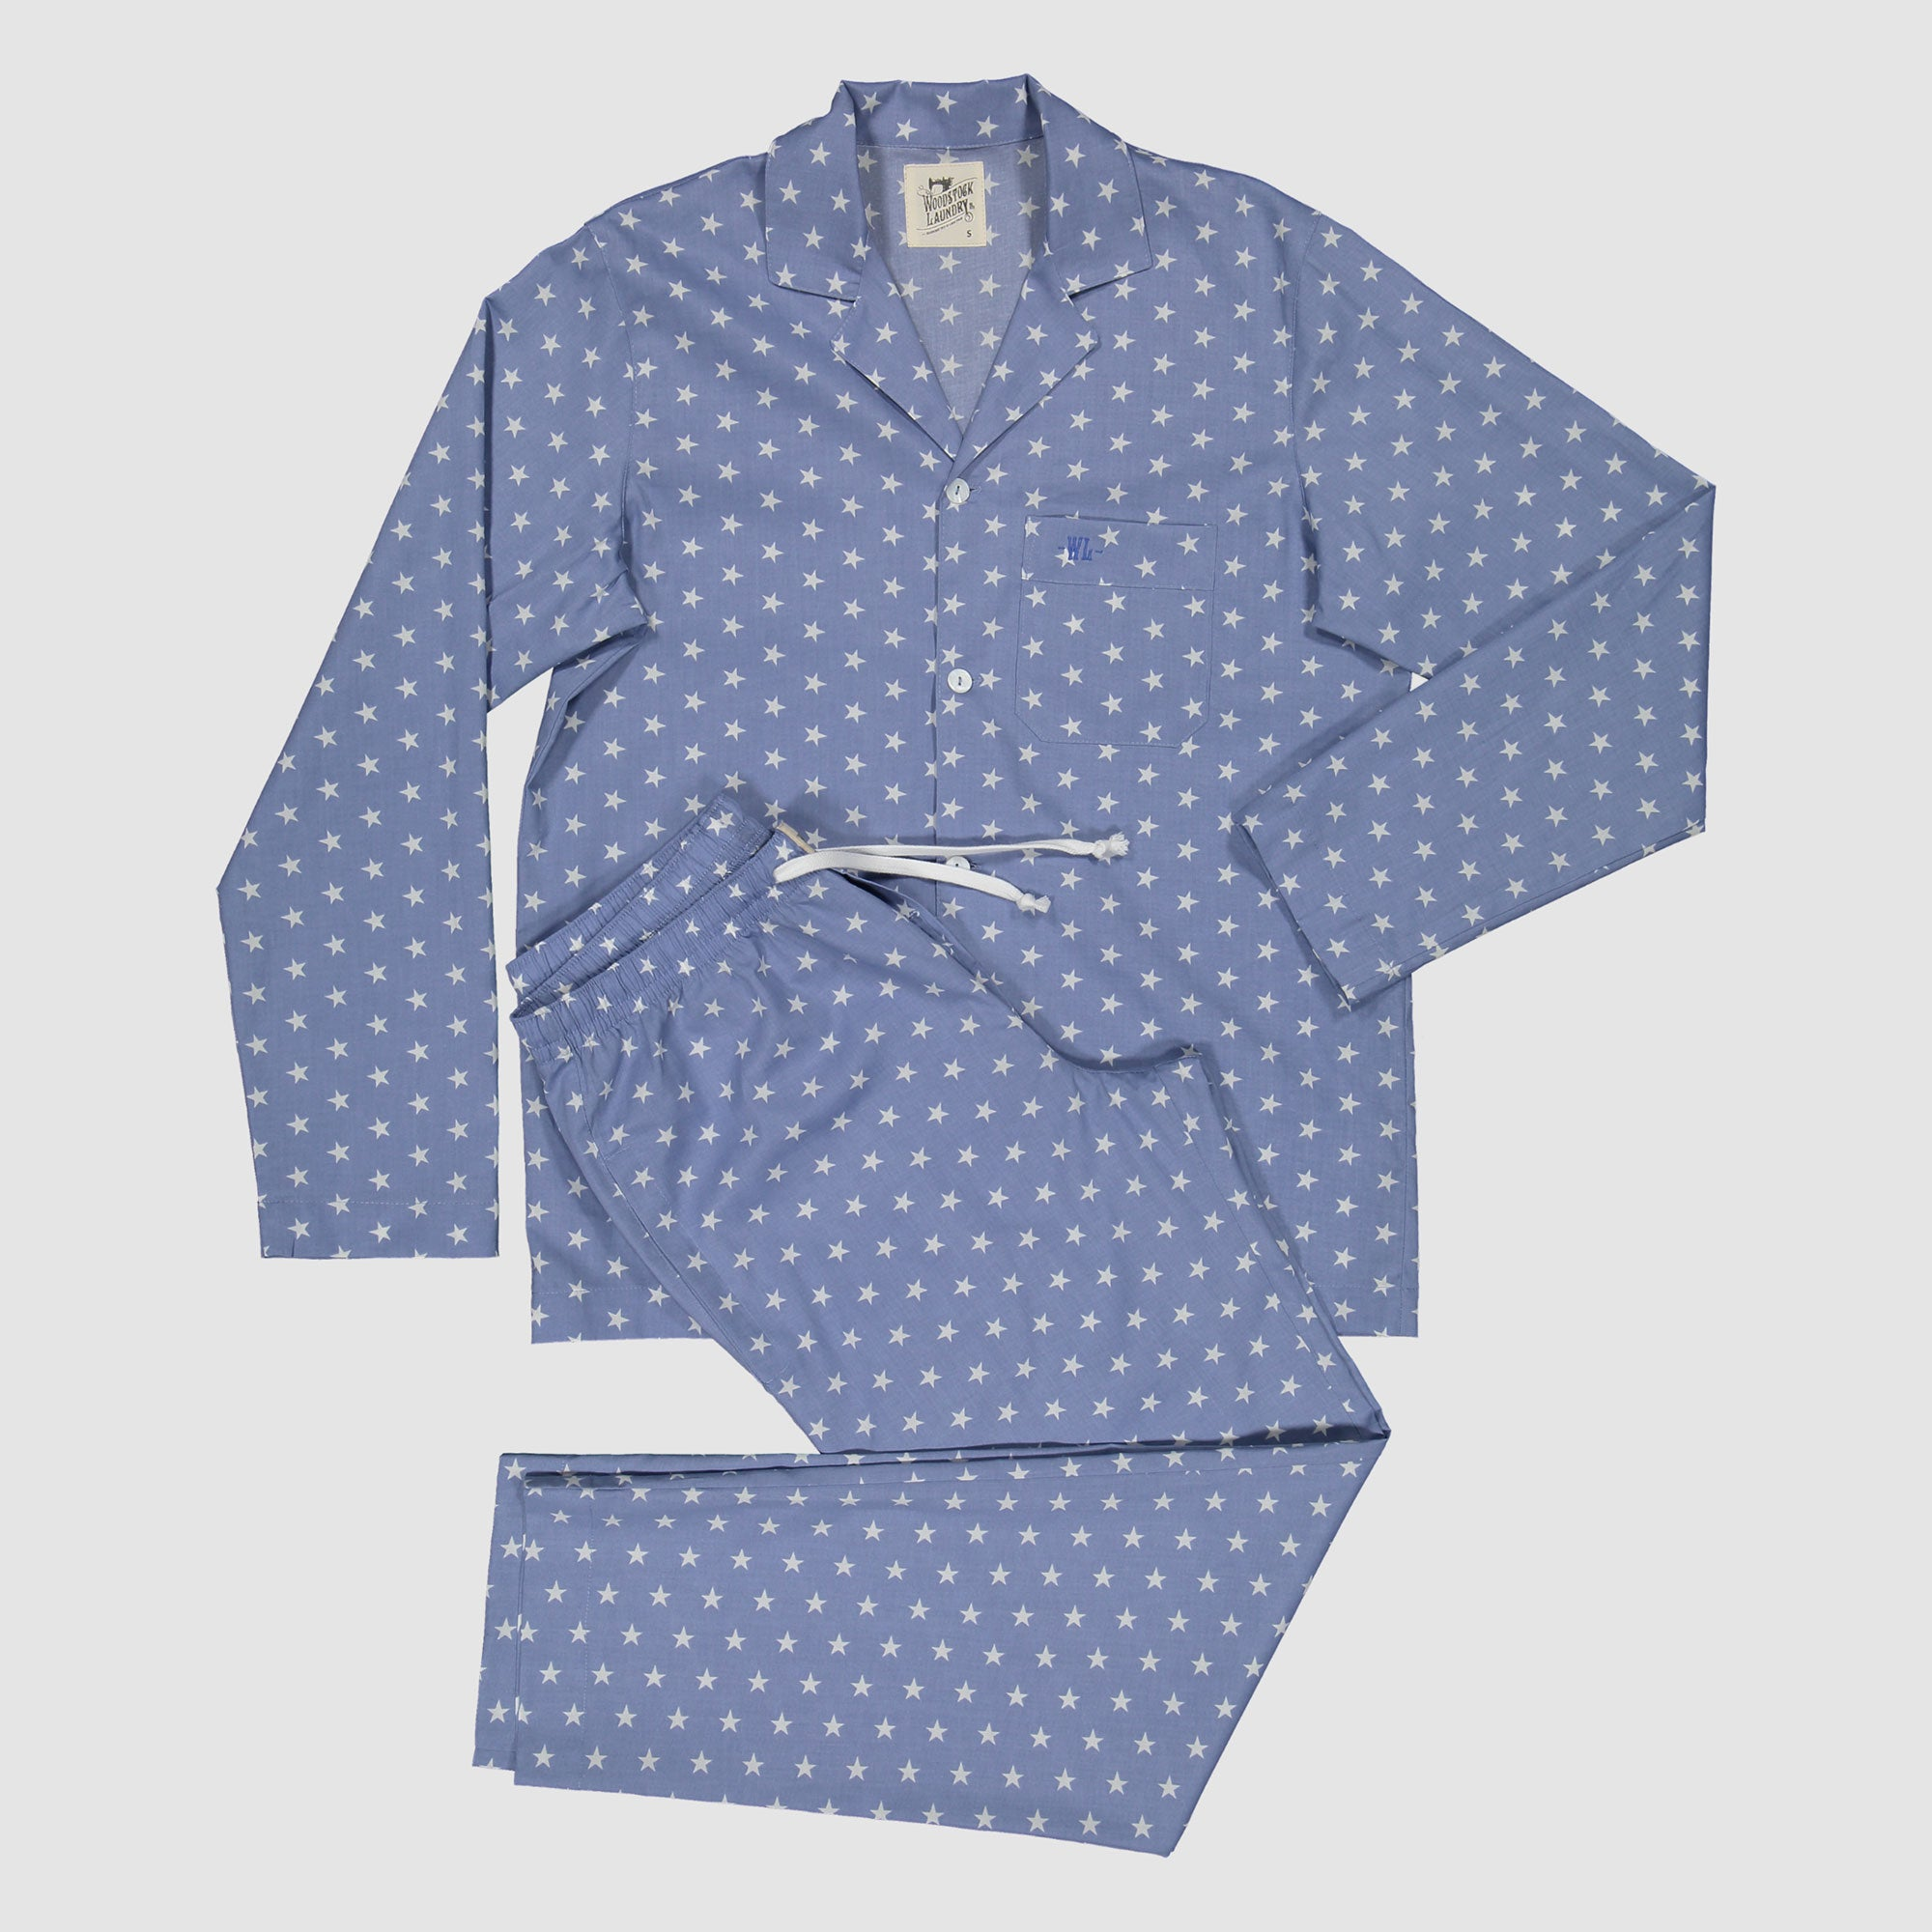 Mens Long Pyjamas Blue Stars - Woodstock Laundry